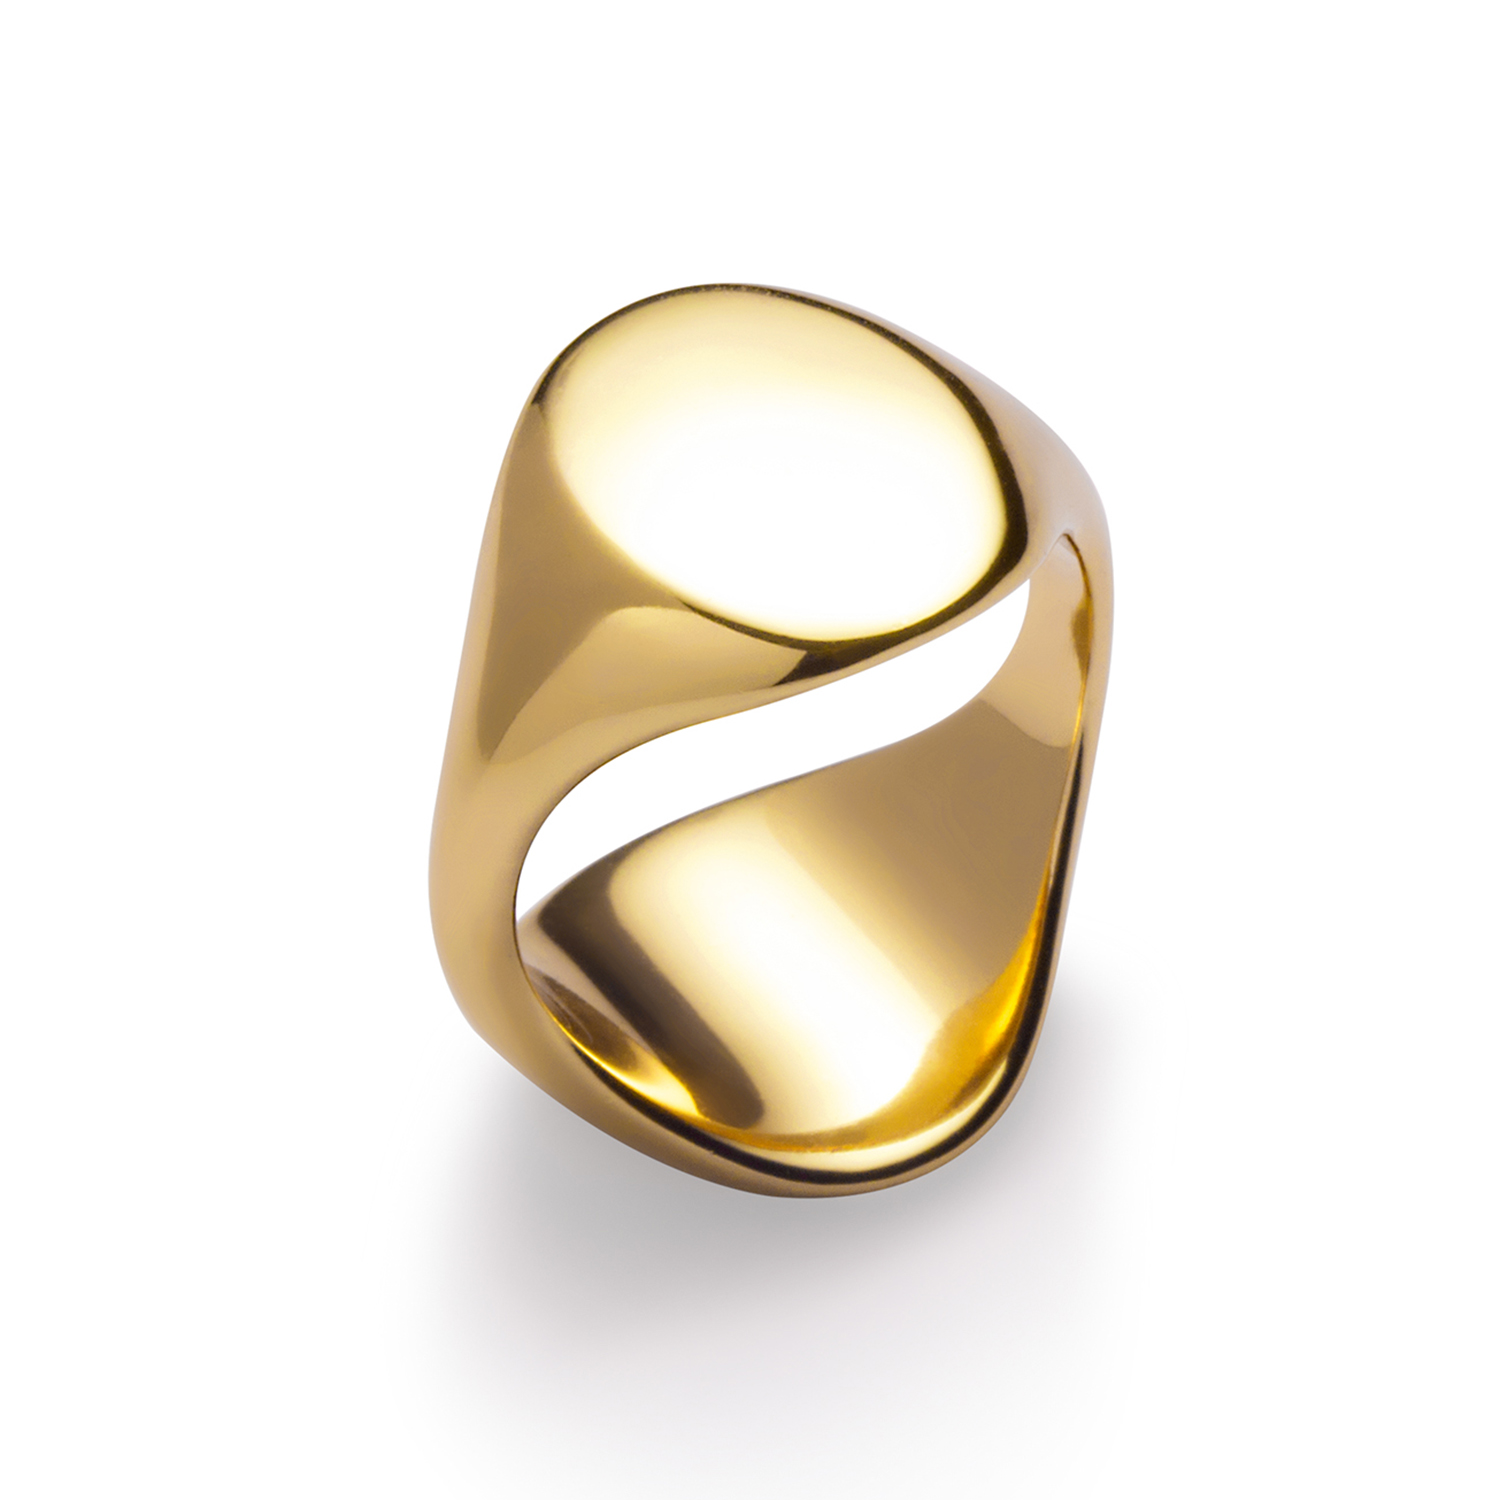 The Signet ringre-interpreted - Discover The 2 Face